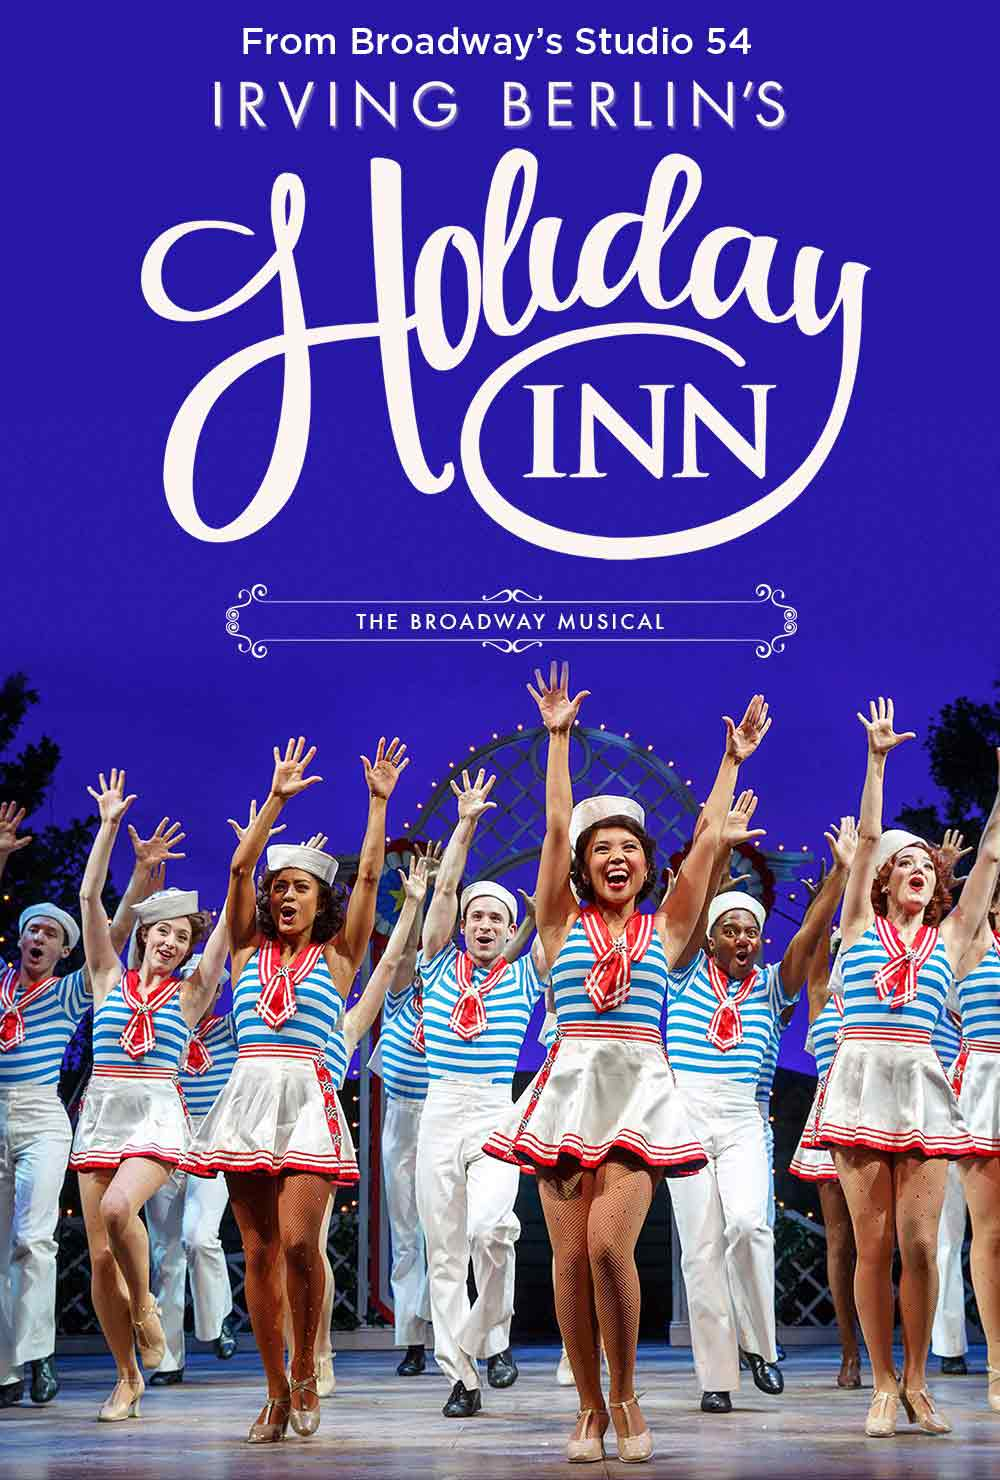 Irving Berlin's Holiday Inn